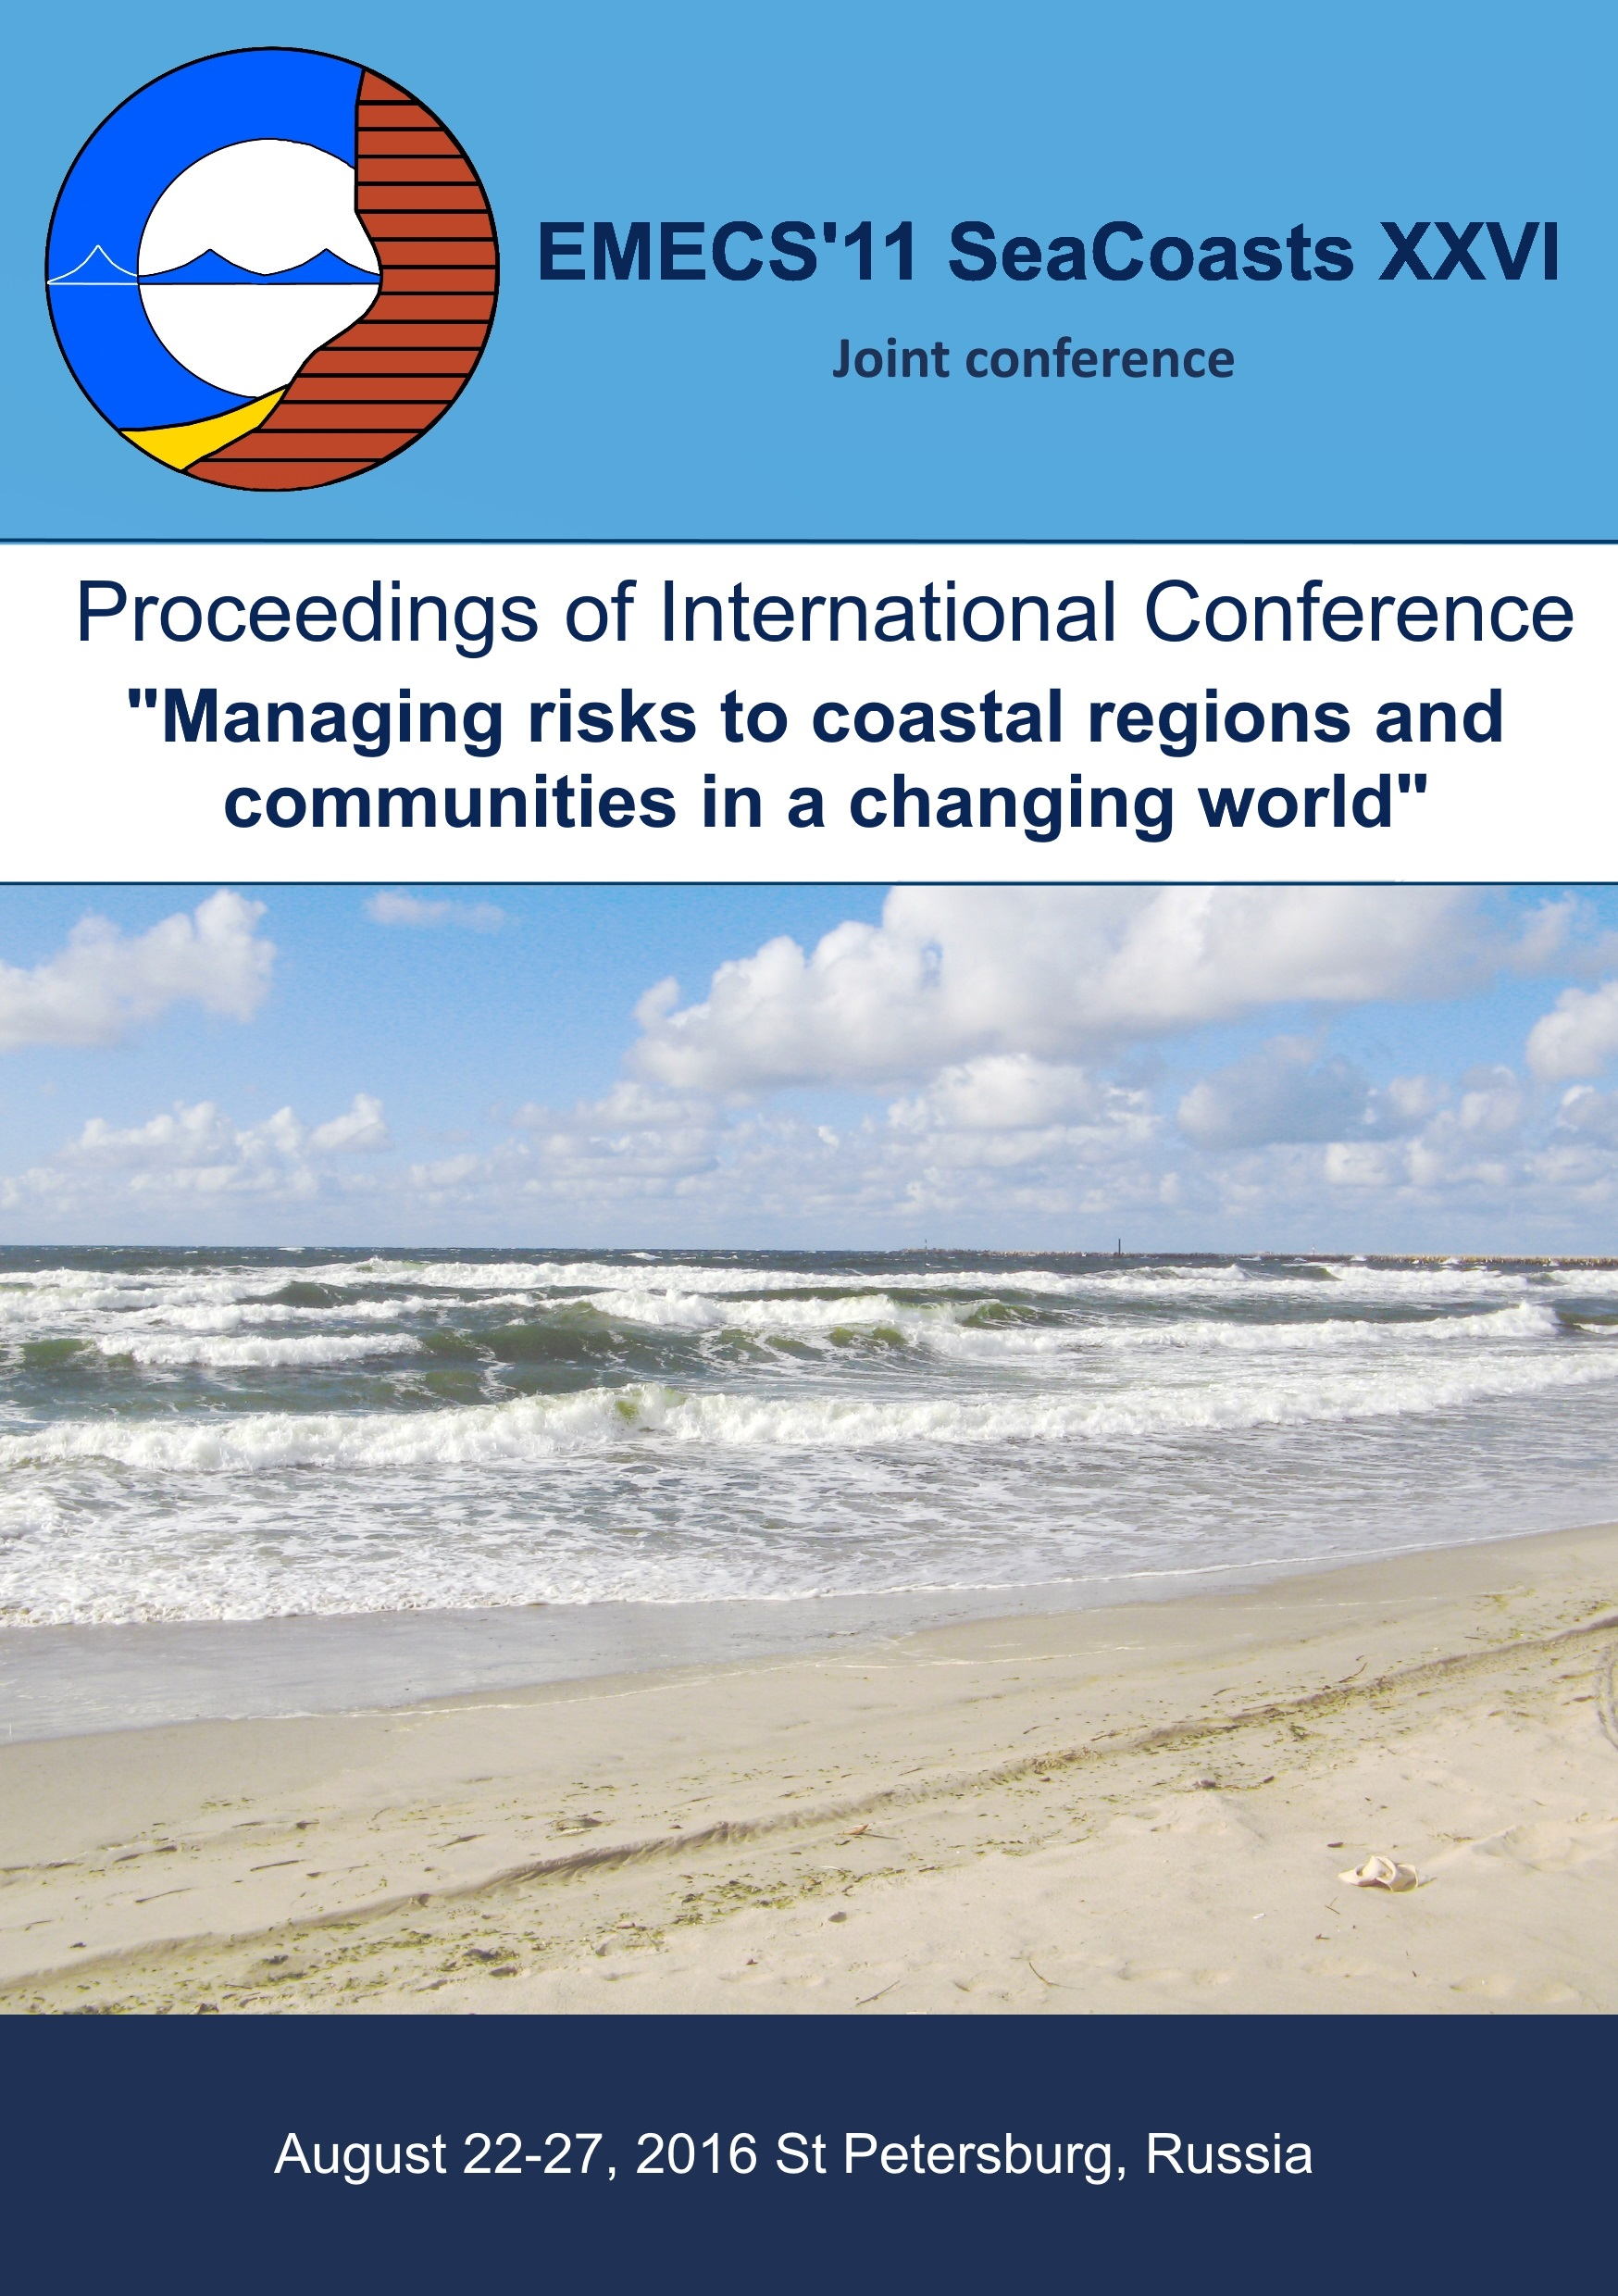 Materials of XXVI International Coastal Conference